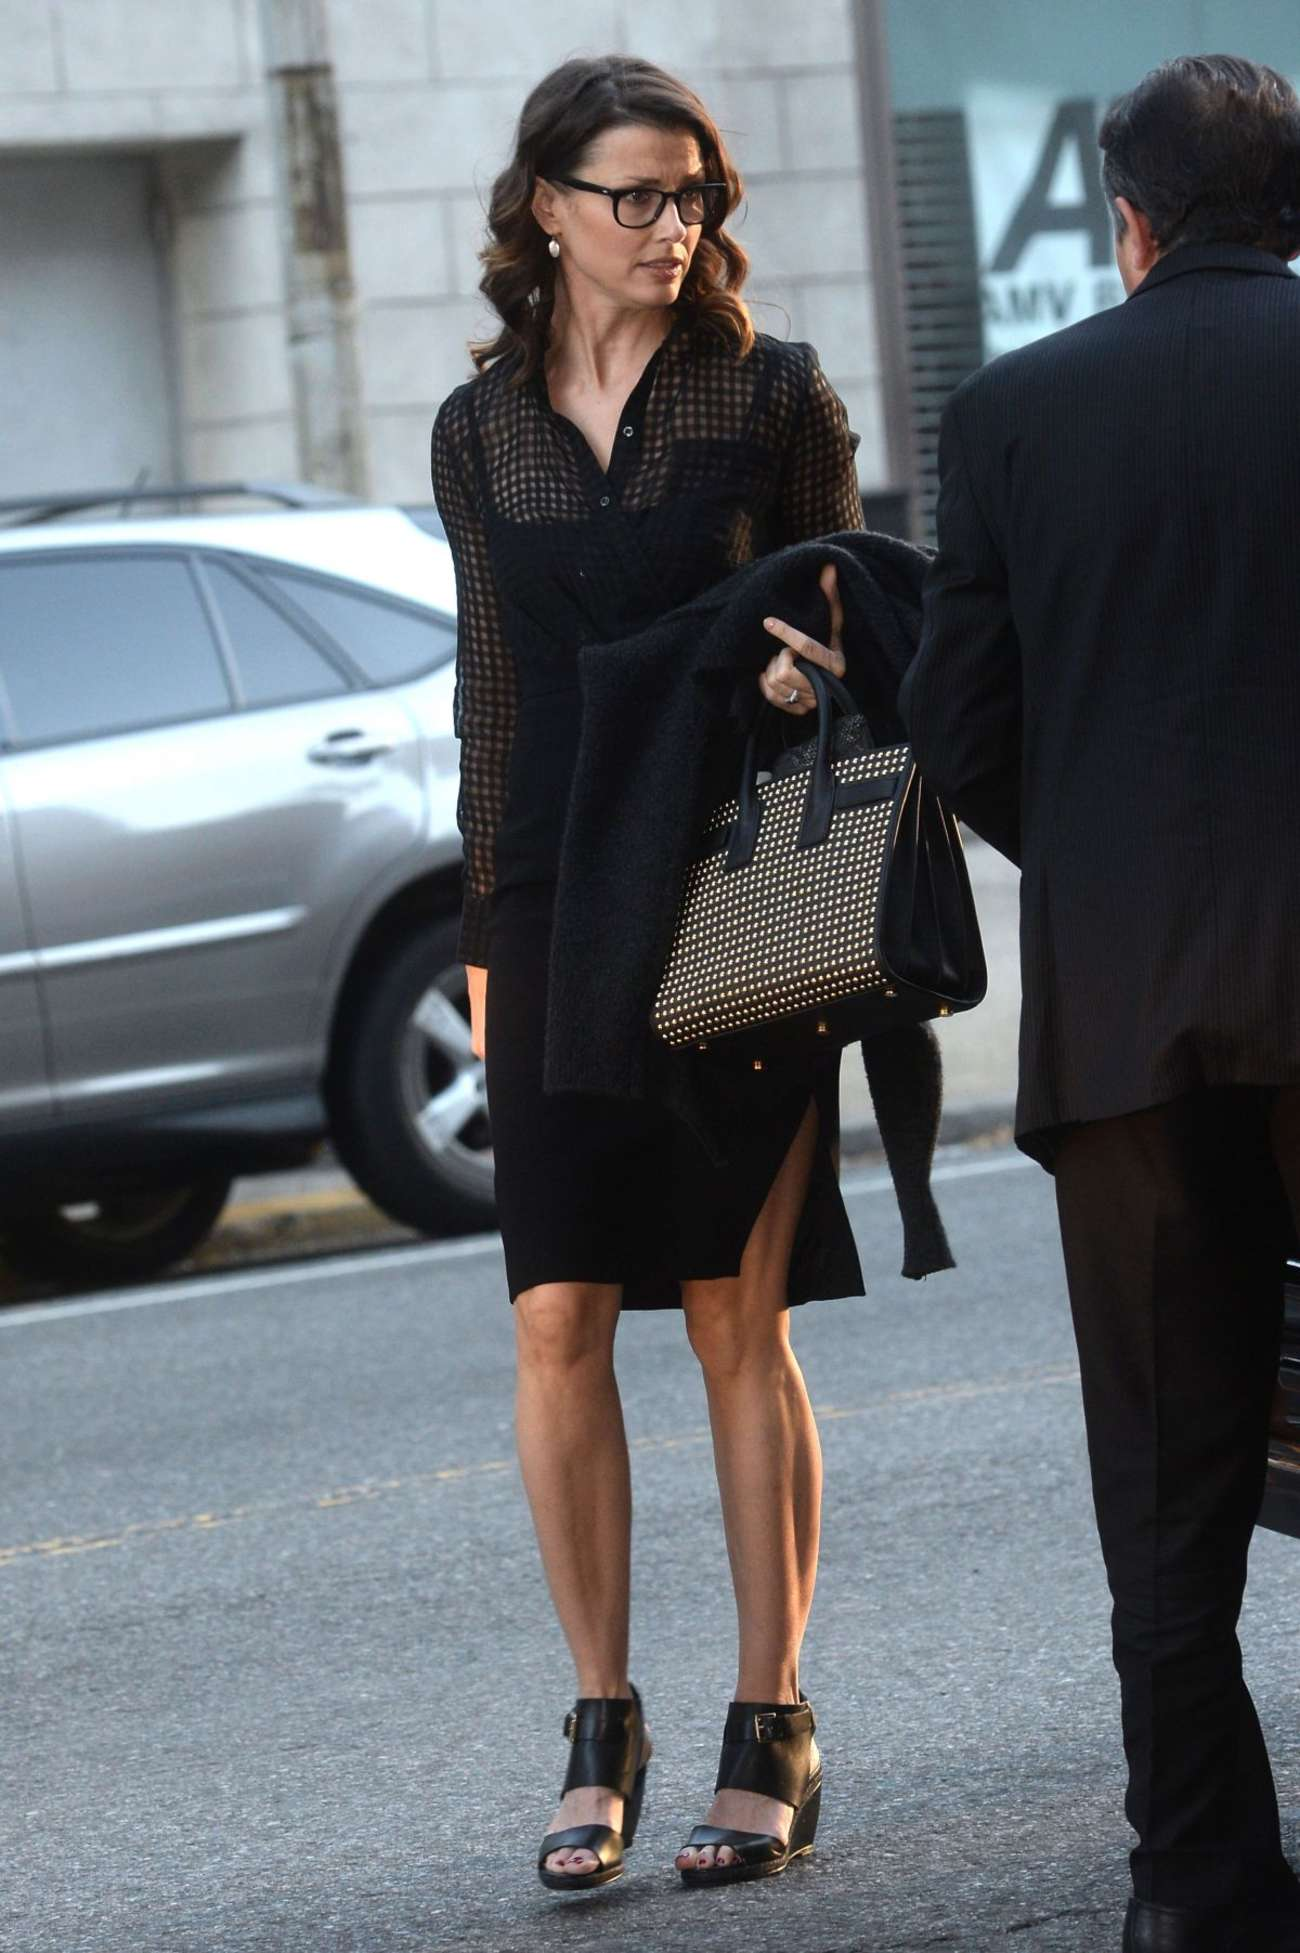 Bridget Moynahan Arrives This Morning Show in New York